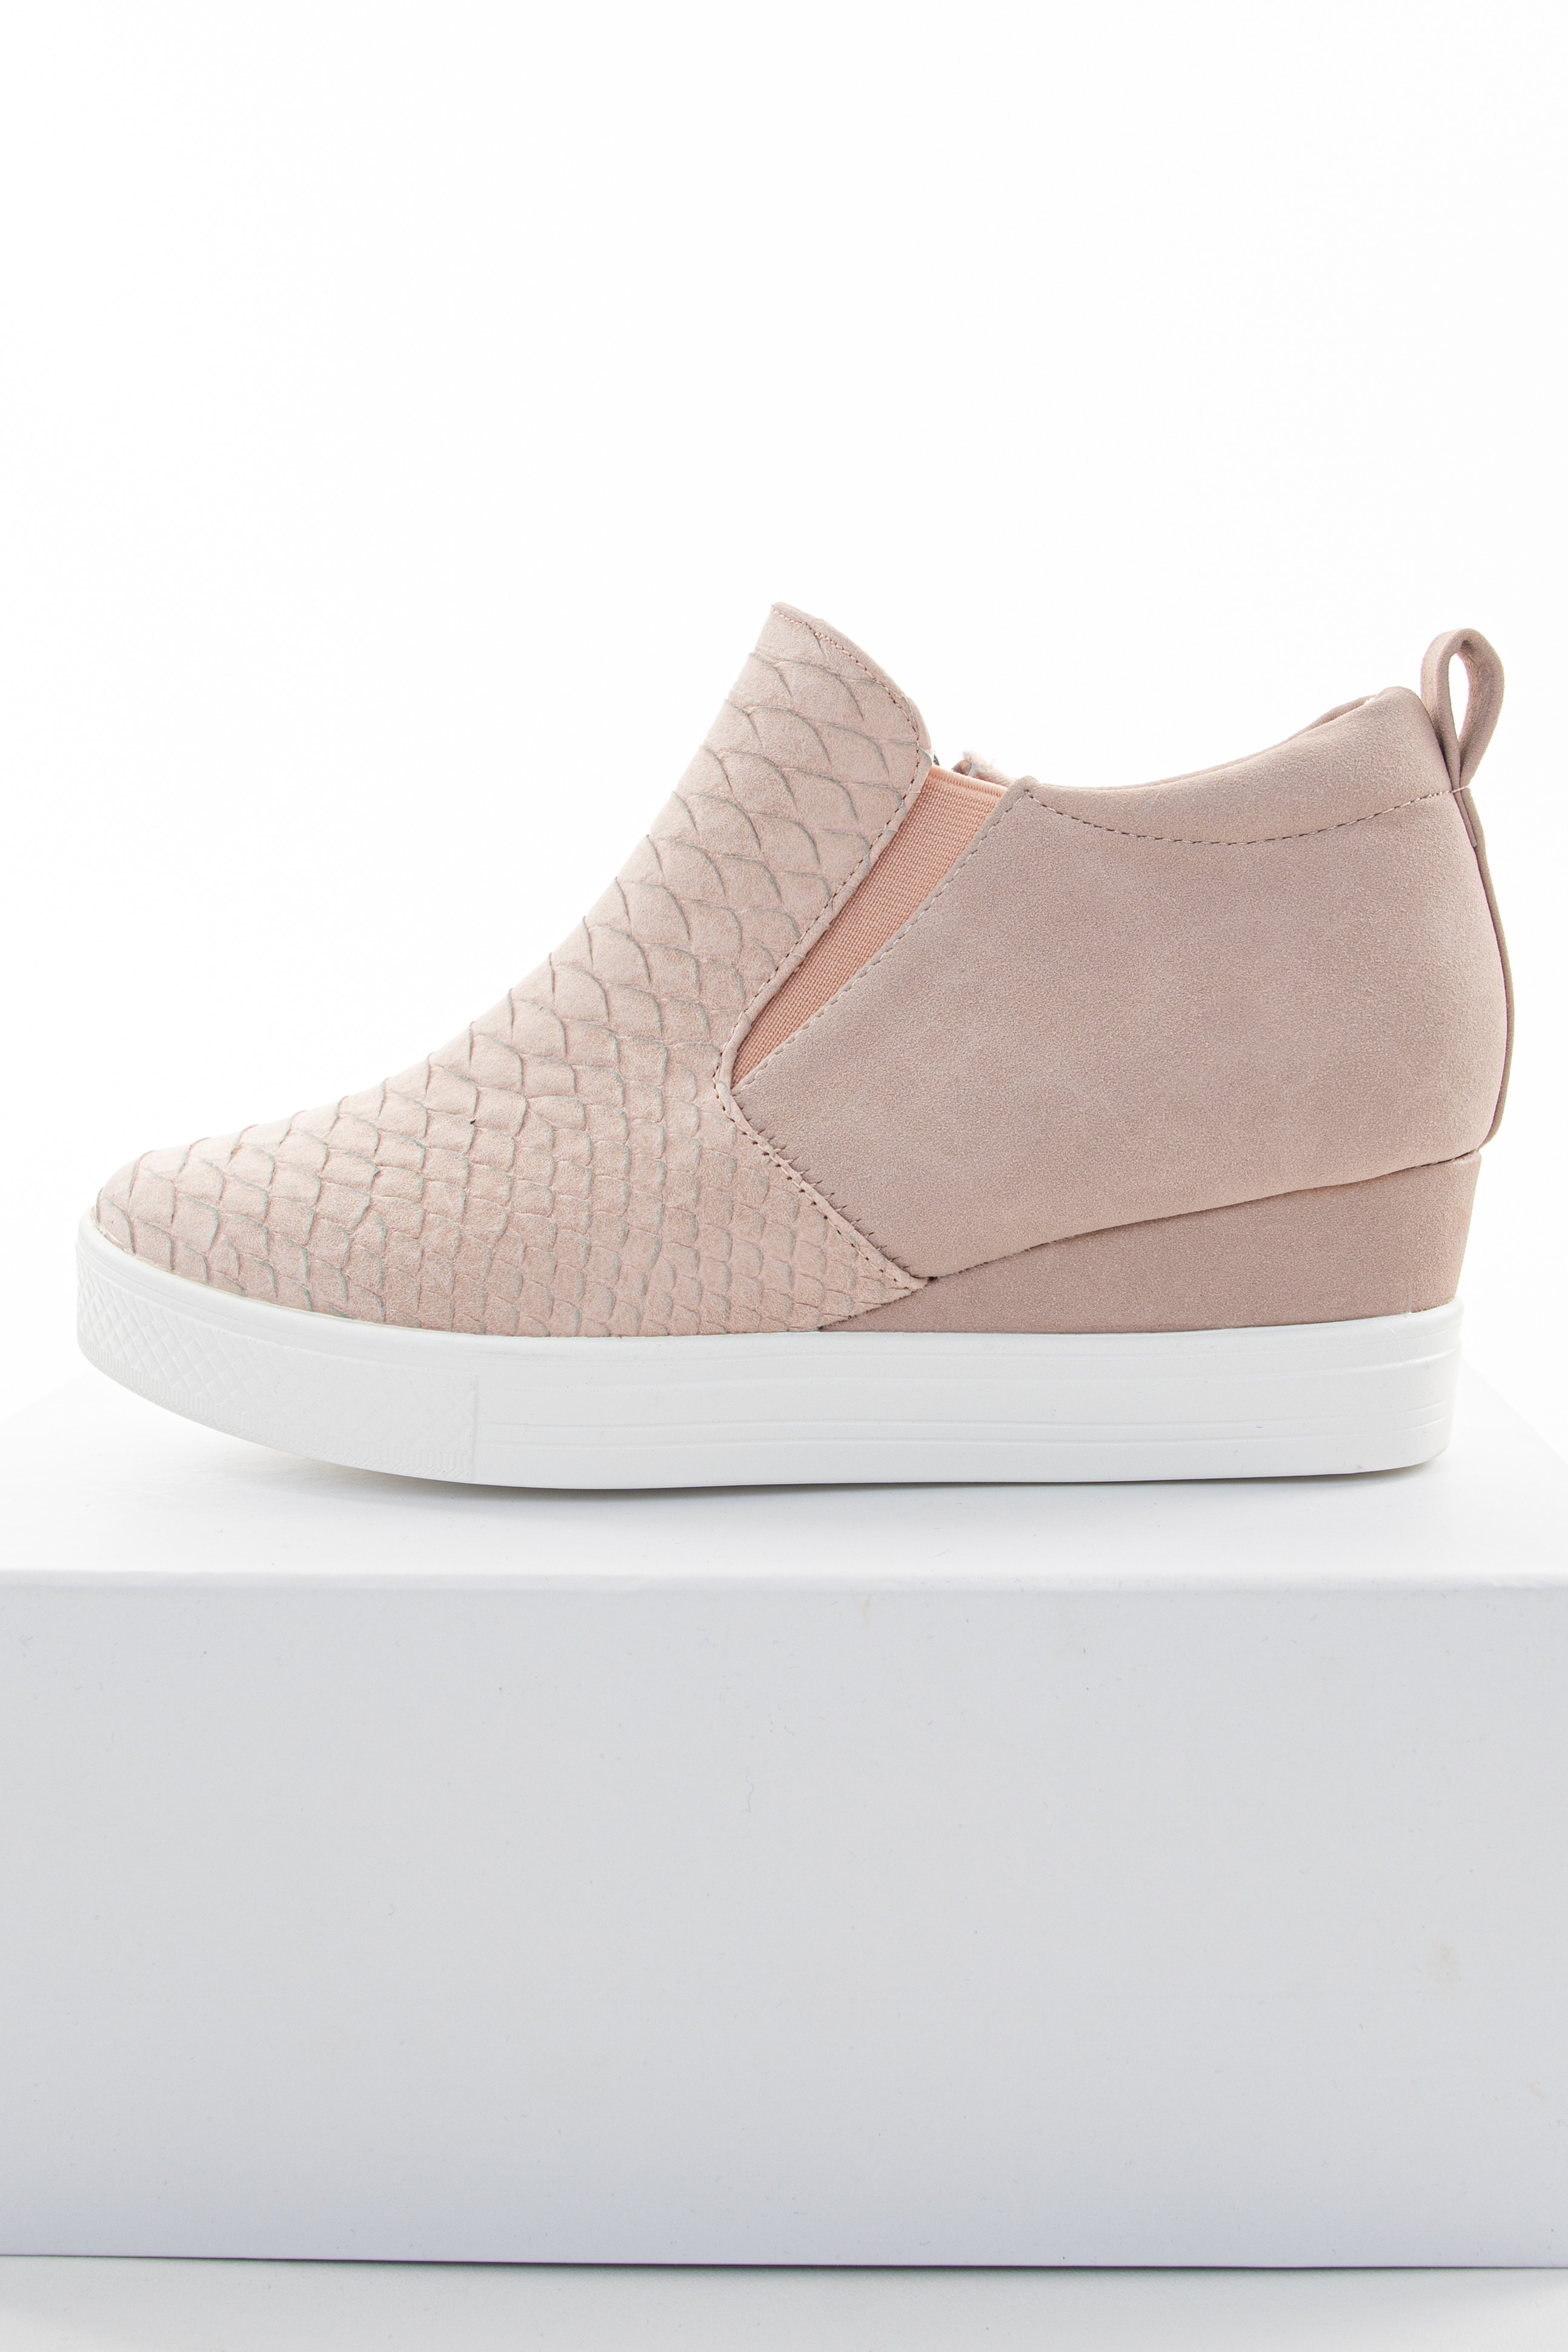 Blush Textured Sneaker Wedges with